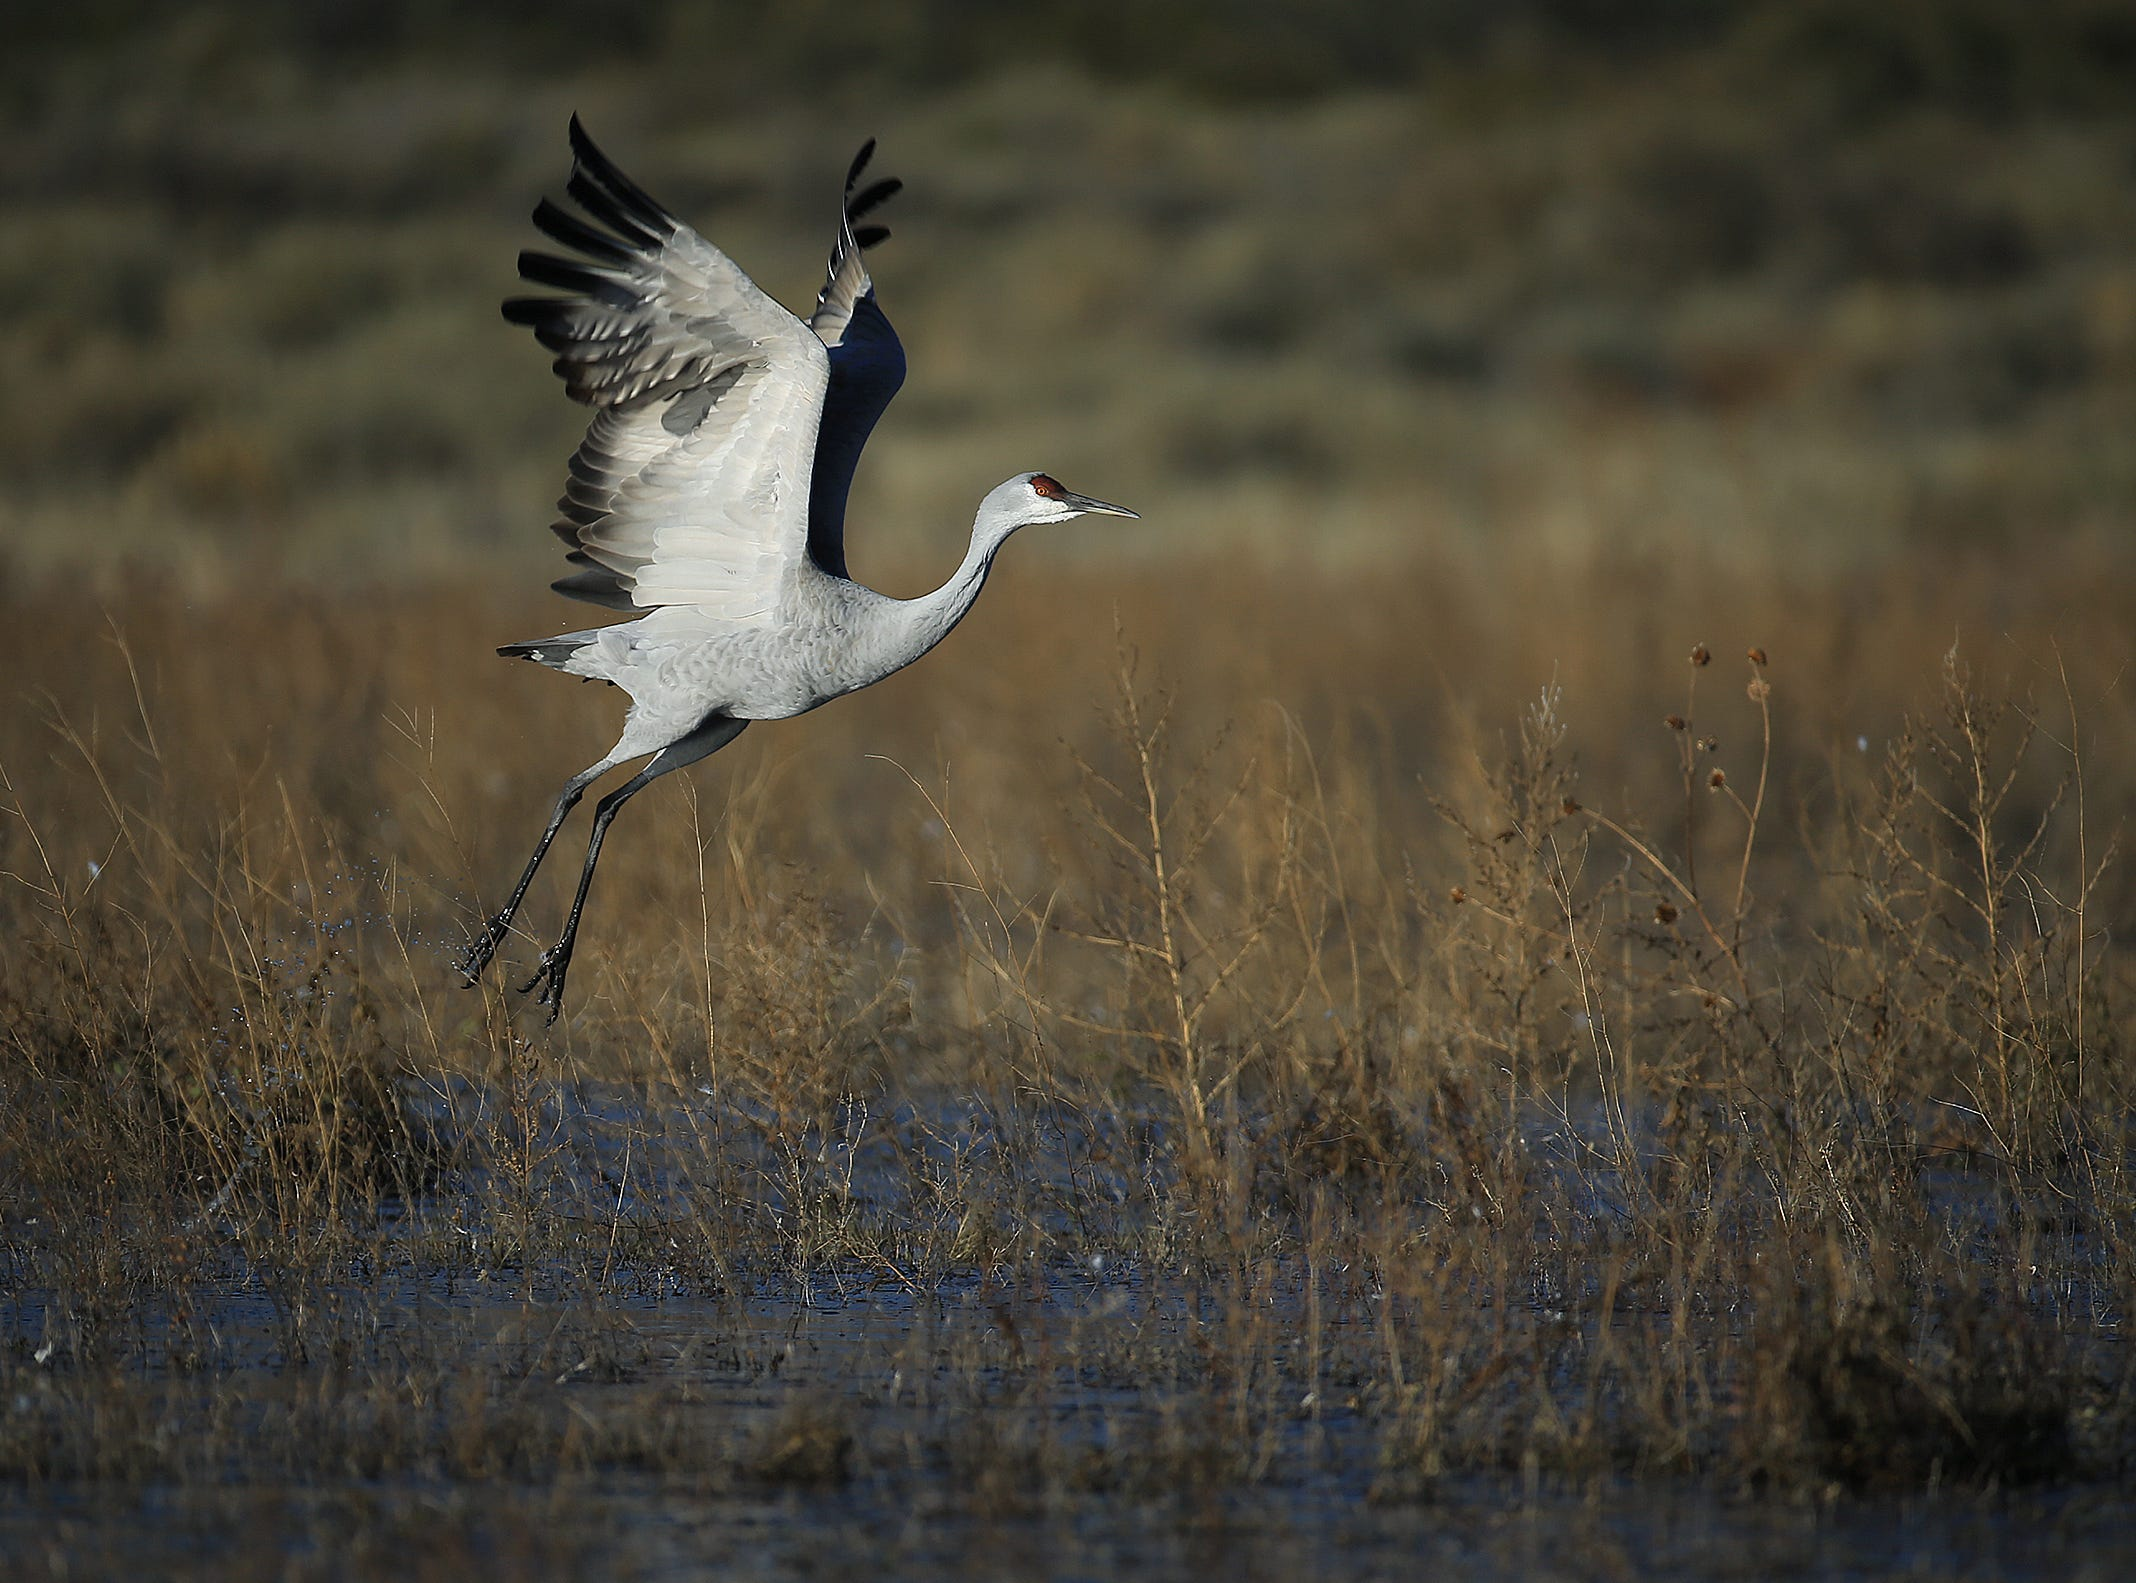 A Sandhill Crane takes flight at the Crane Pond on the north end of Bosque del Apache National Wildlife Refuge. Tens of thousands of cranes us the bosque as a resting spot during their annual migration.